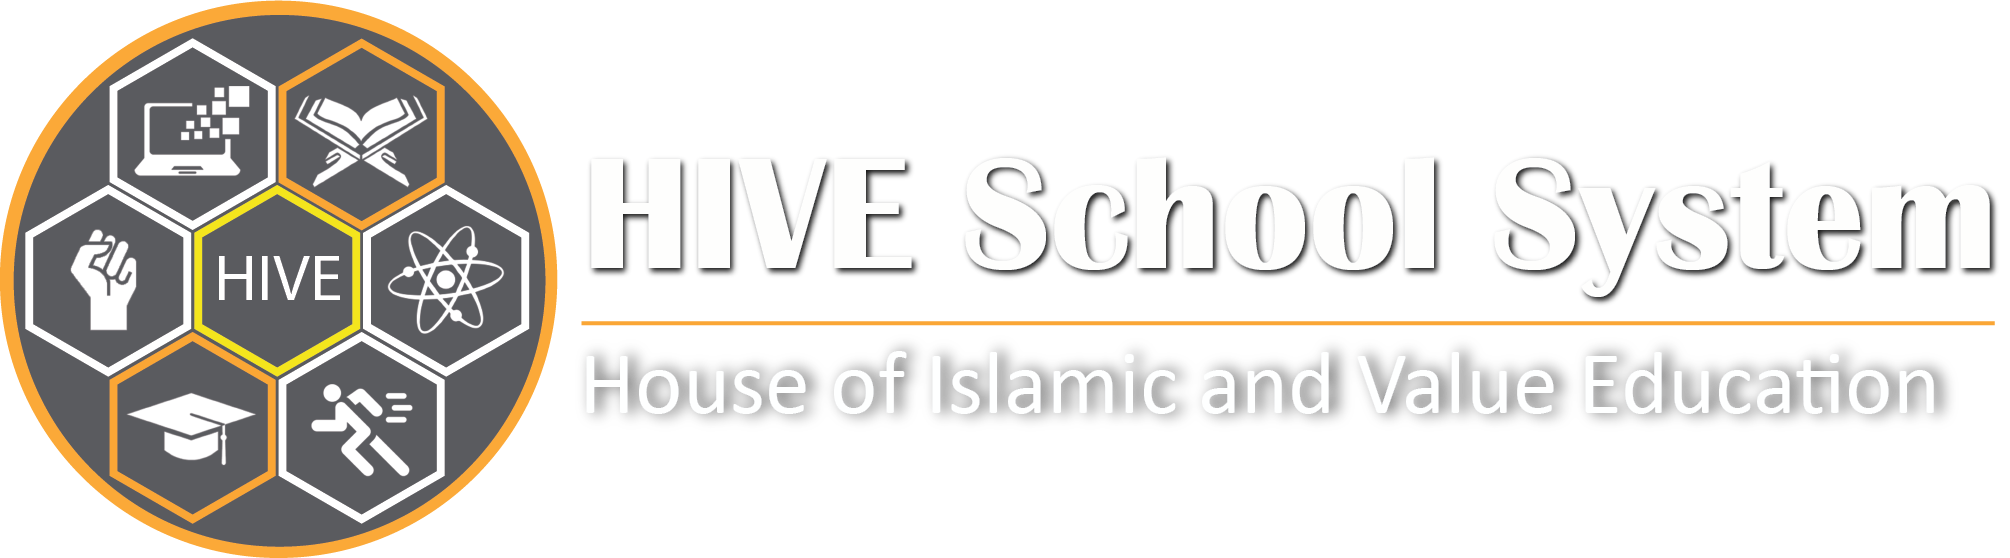 HIVE School System